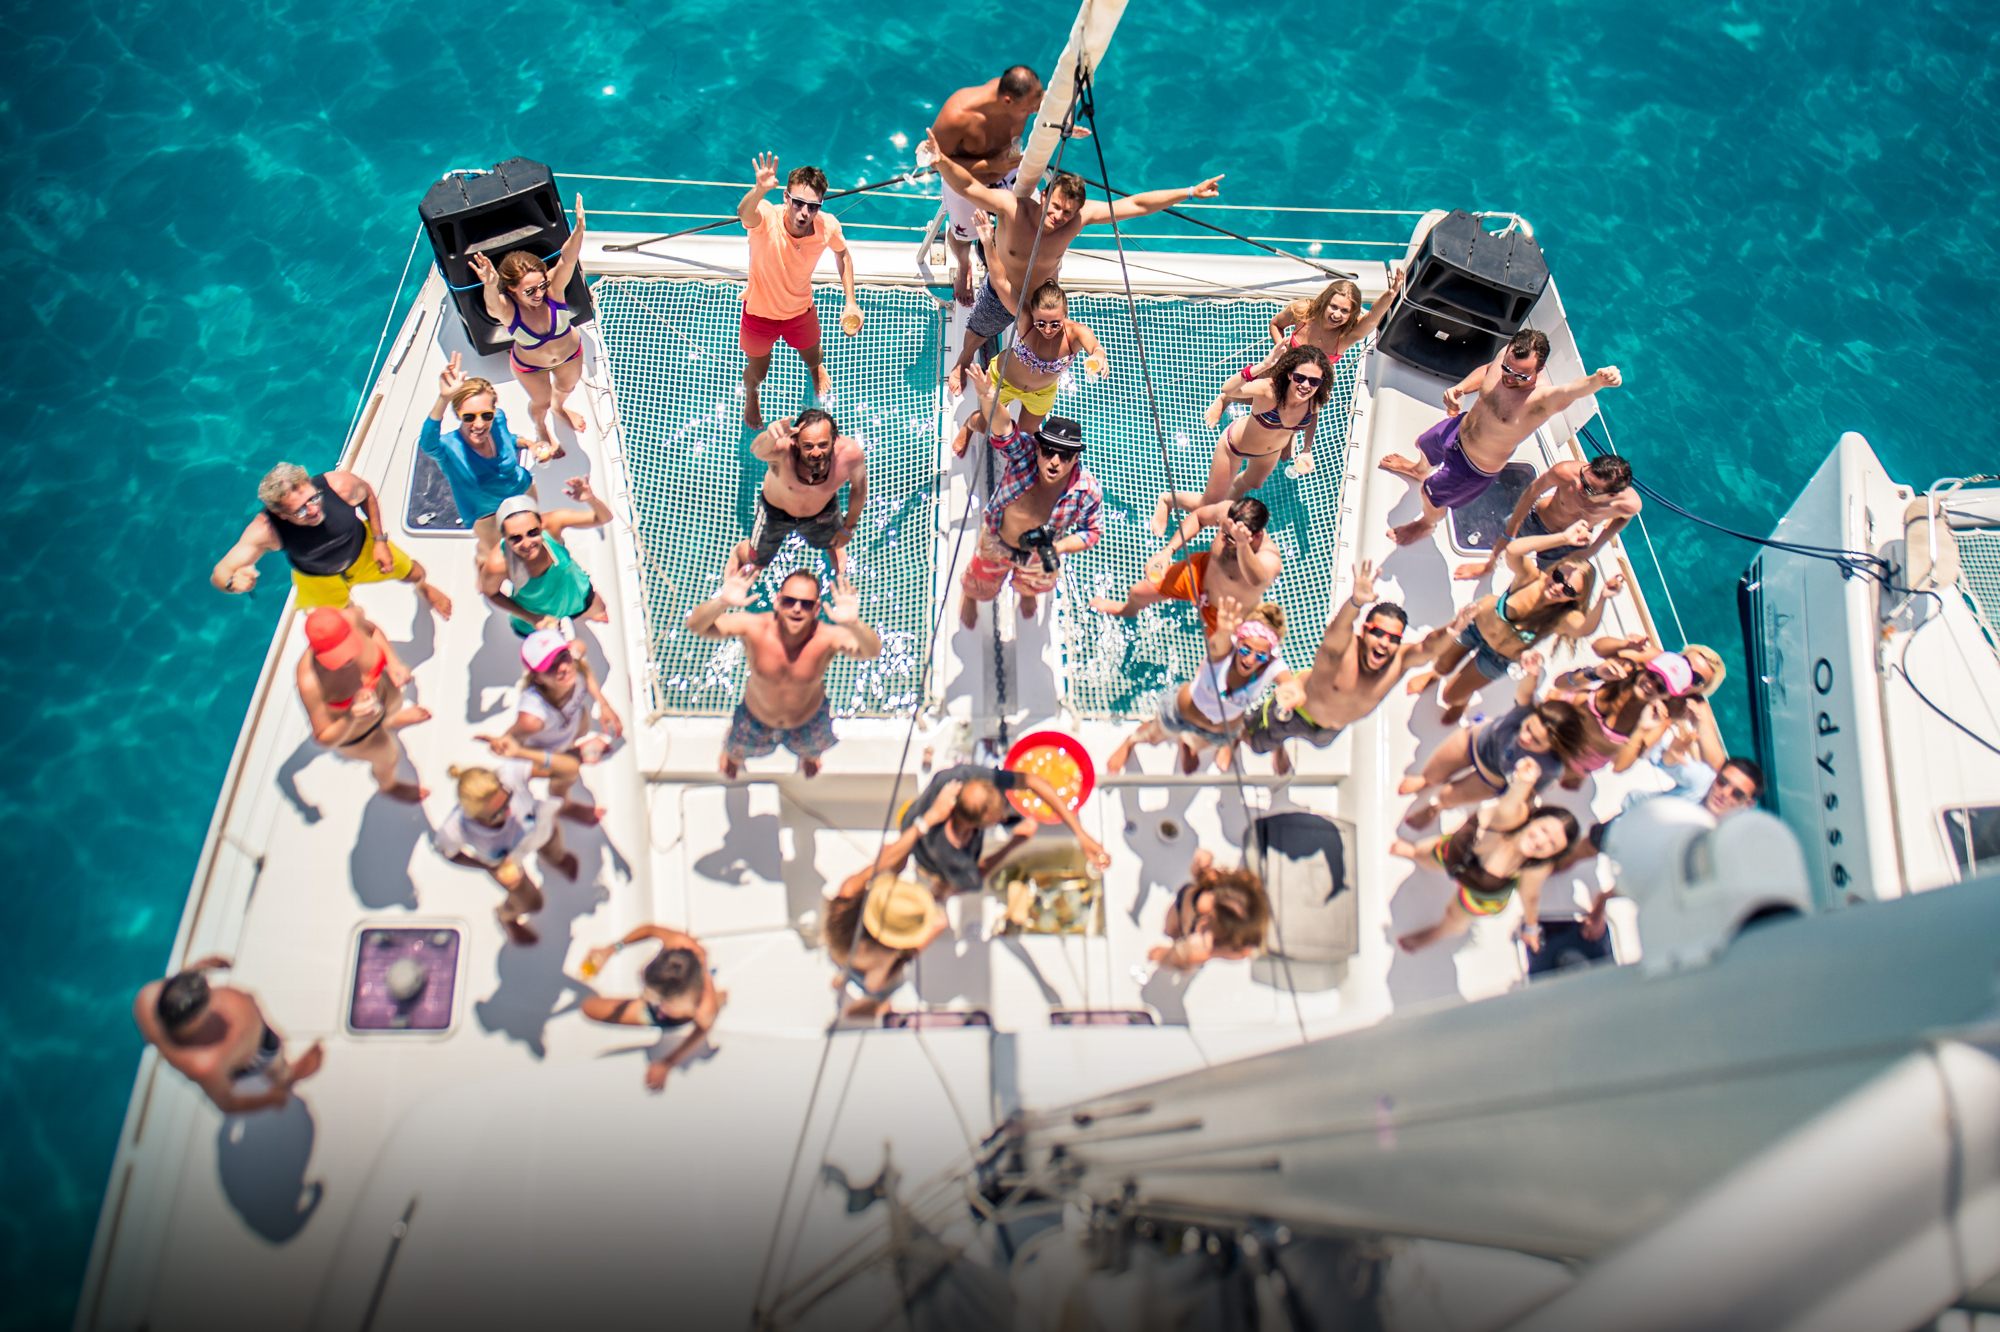 party and clubbing tourism in ibiza Top 5 high-end nightlife destinations in ibiza by george burdon on may 23, 2013 in bars, clubs, europe great review of the party places in ibiza.